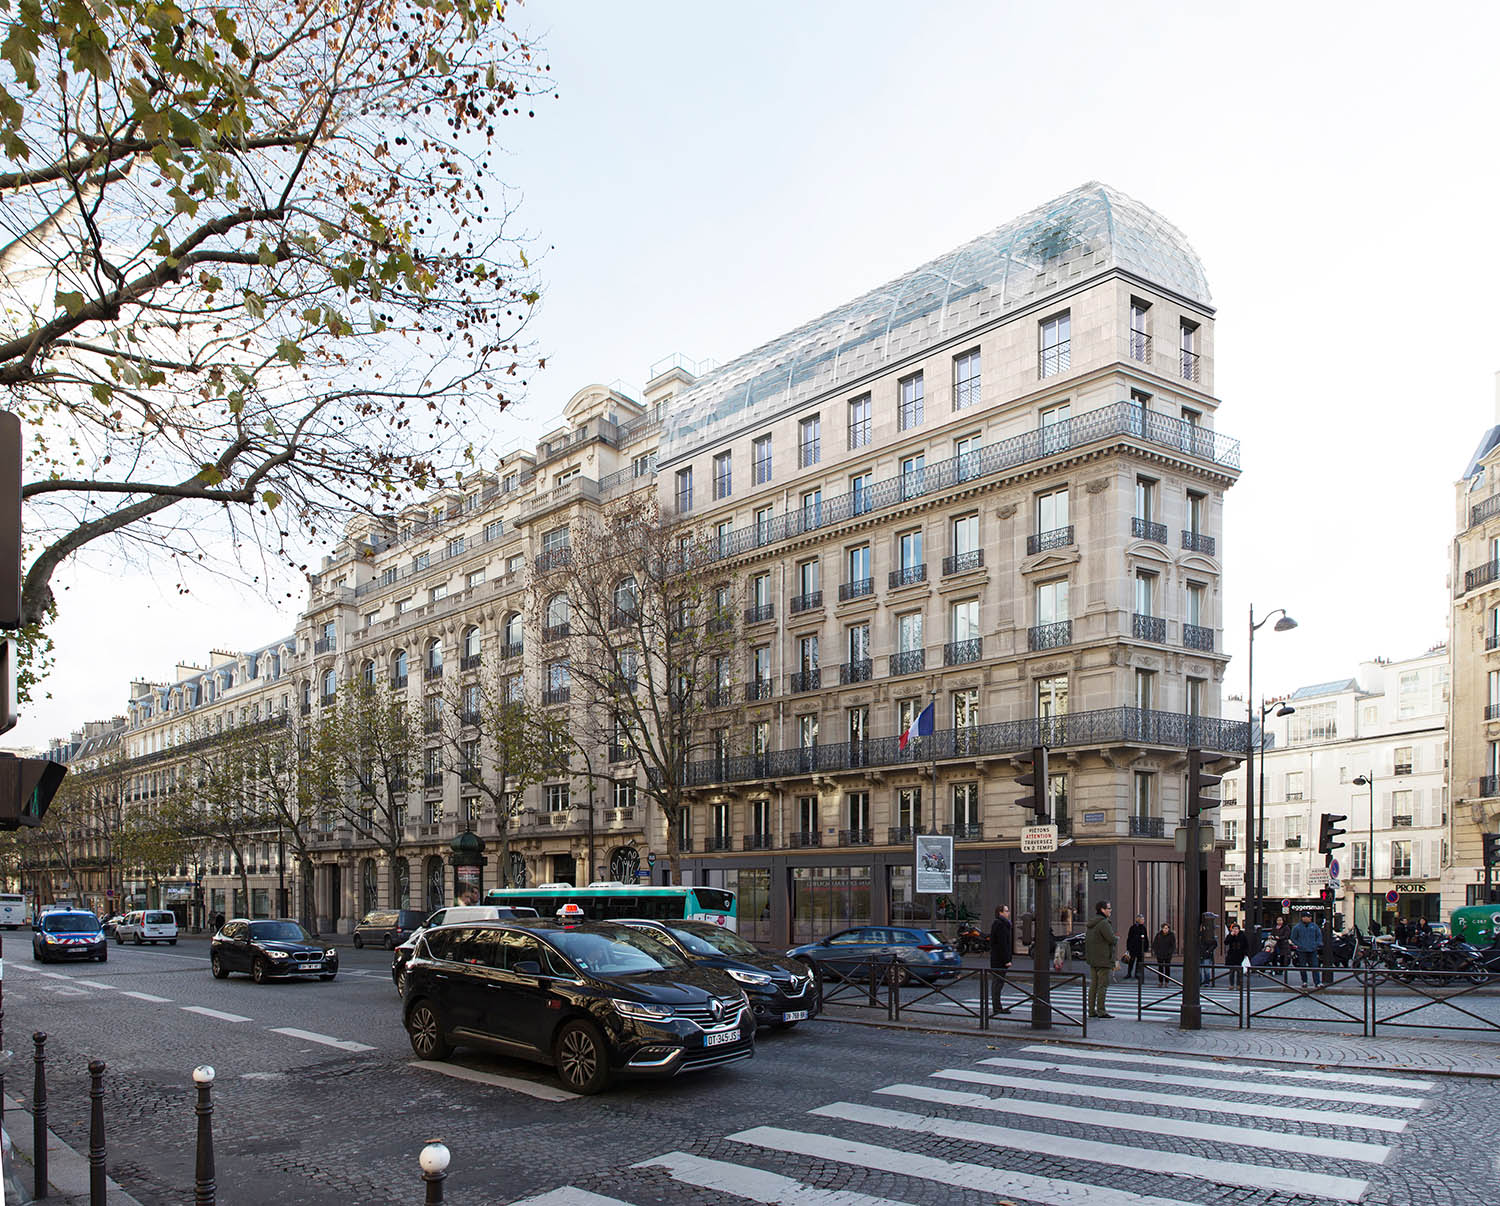 175 Haussmann after its restructuring, from the left side view. ©PCA-STREAM}